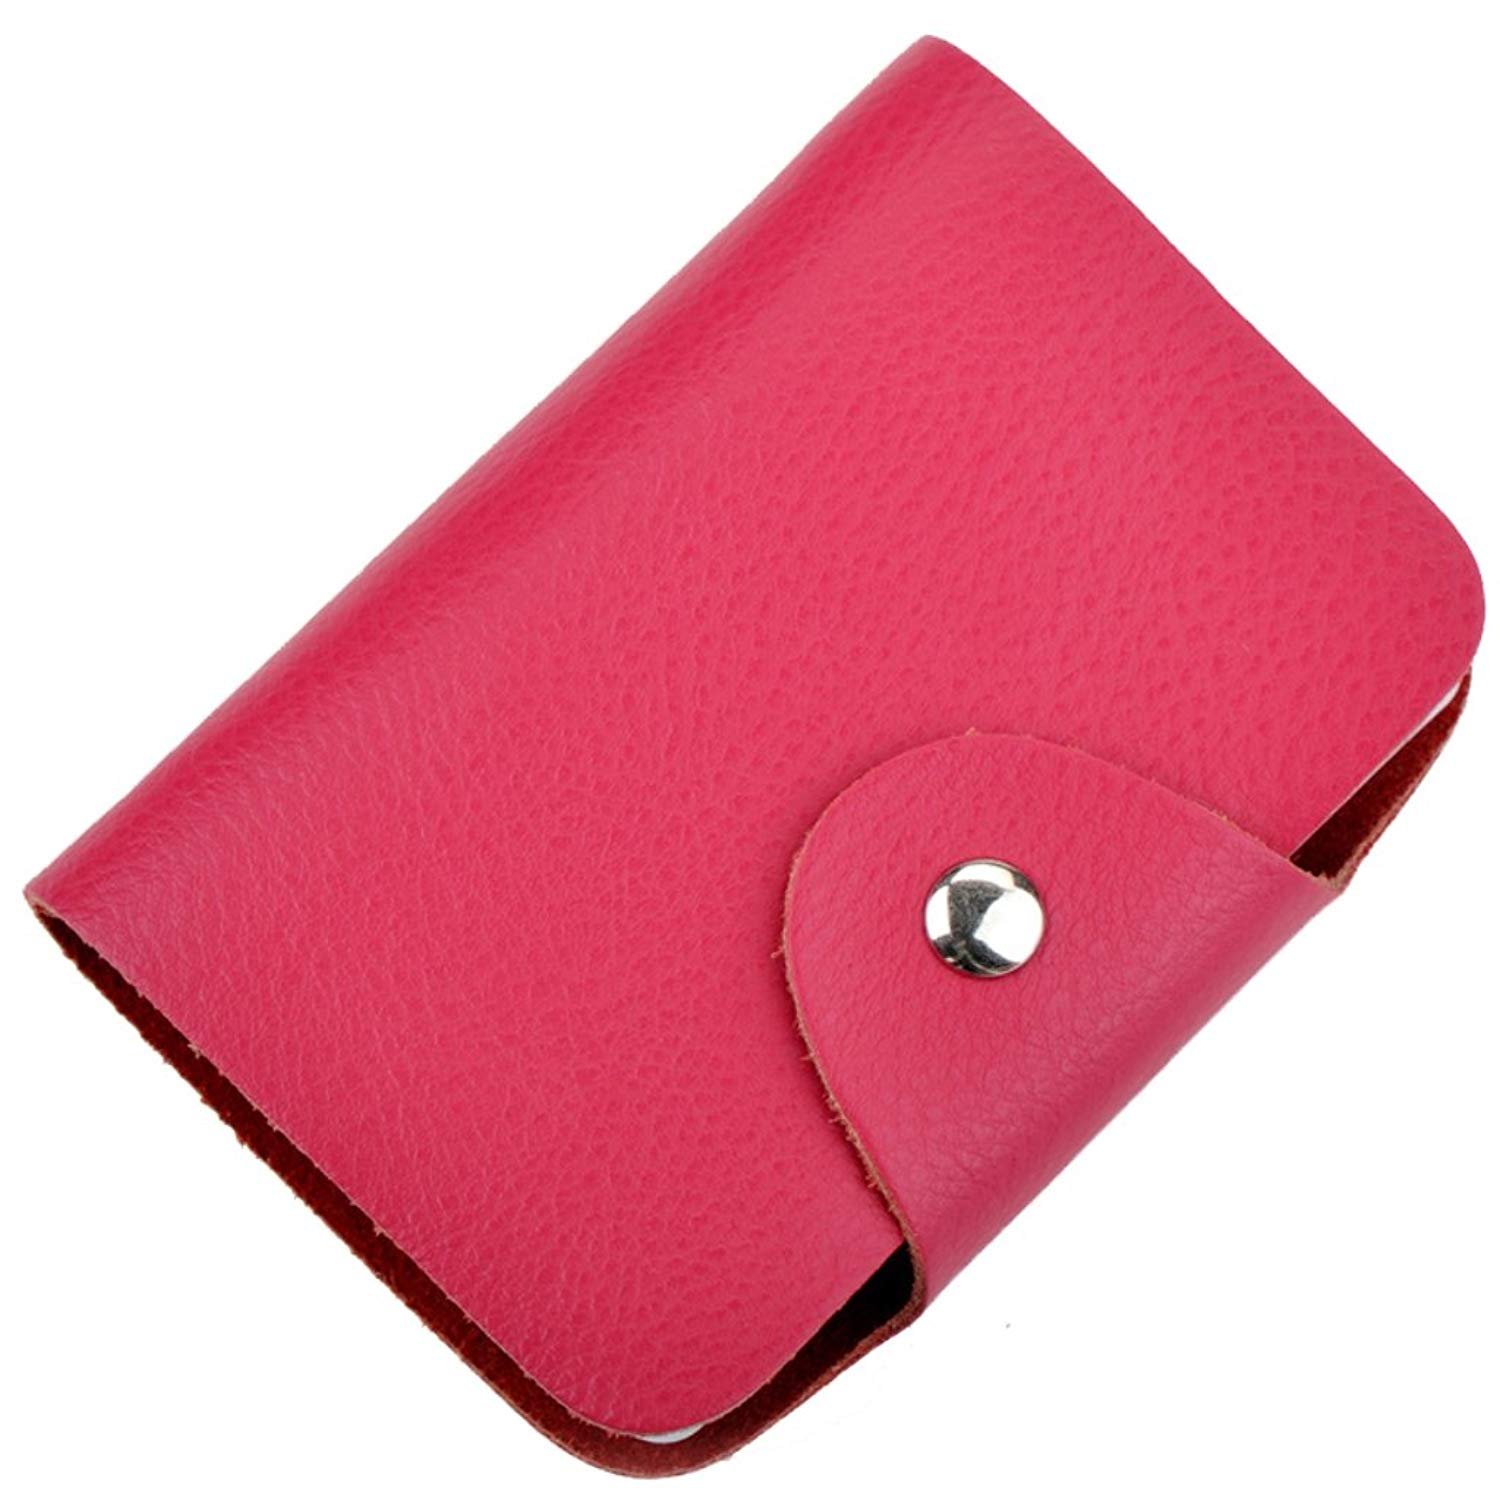 Classic Credit Card Case, Credit Card Holder, Credit Card Wallet Leather